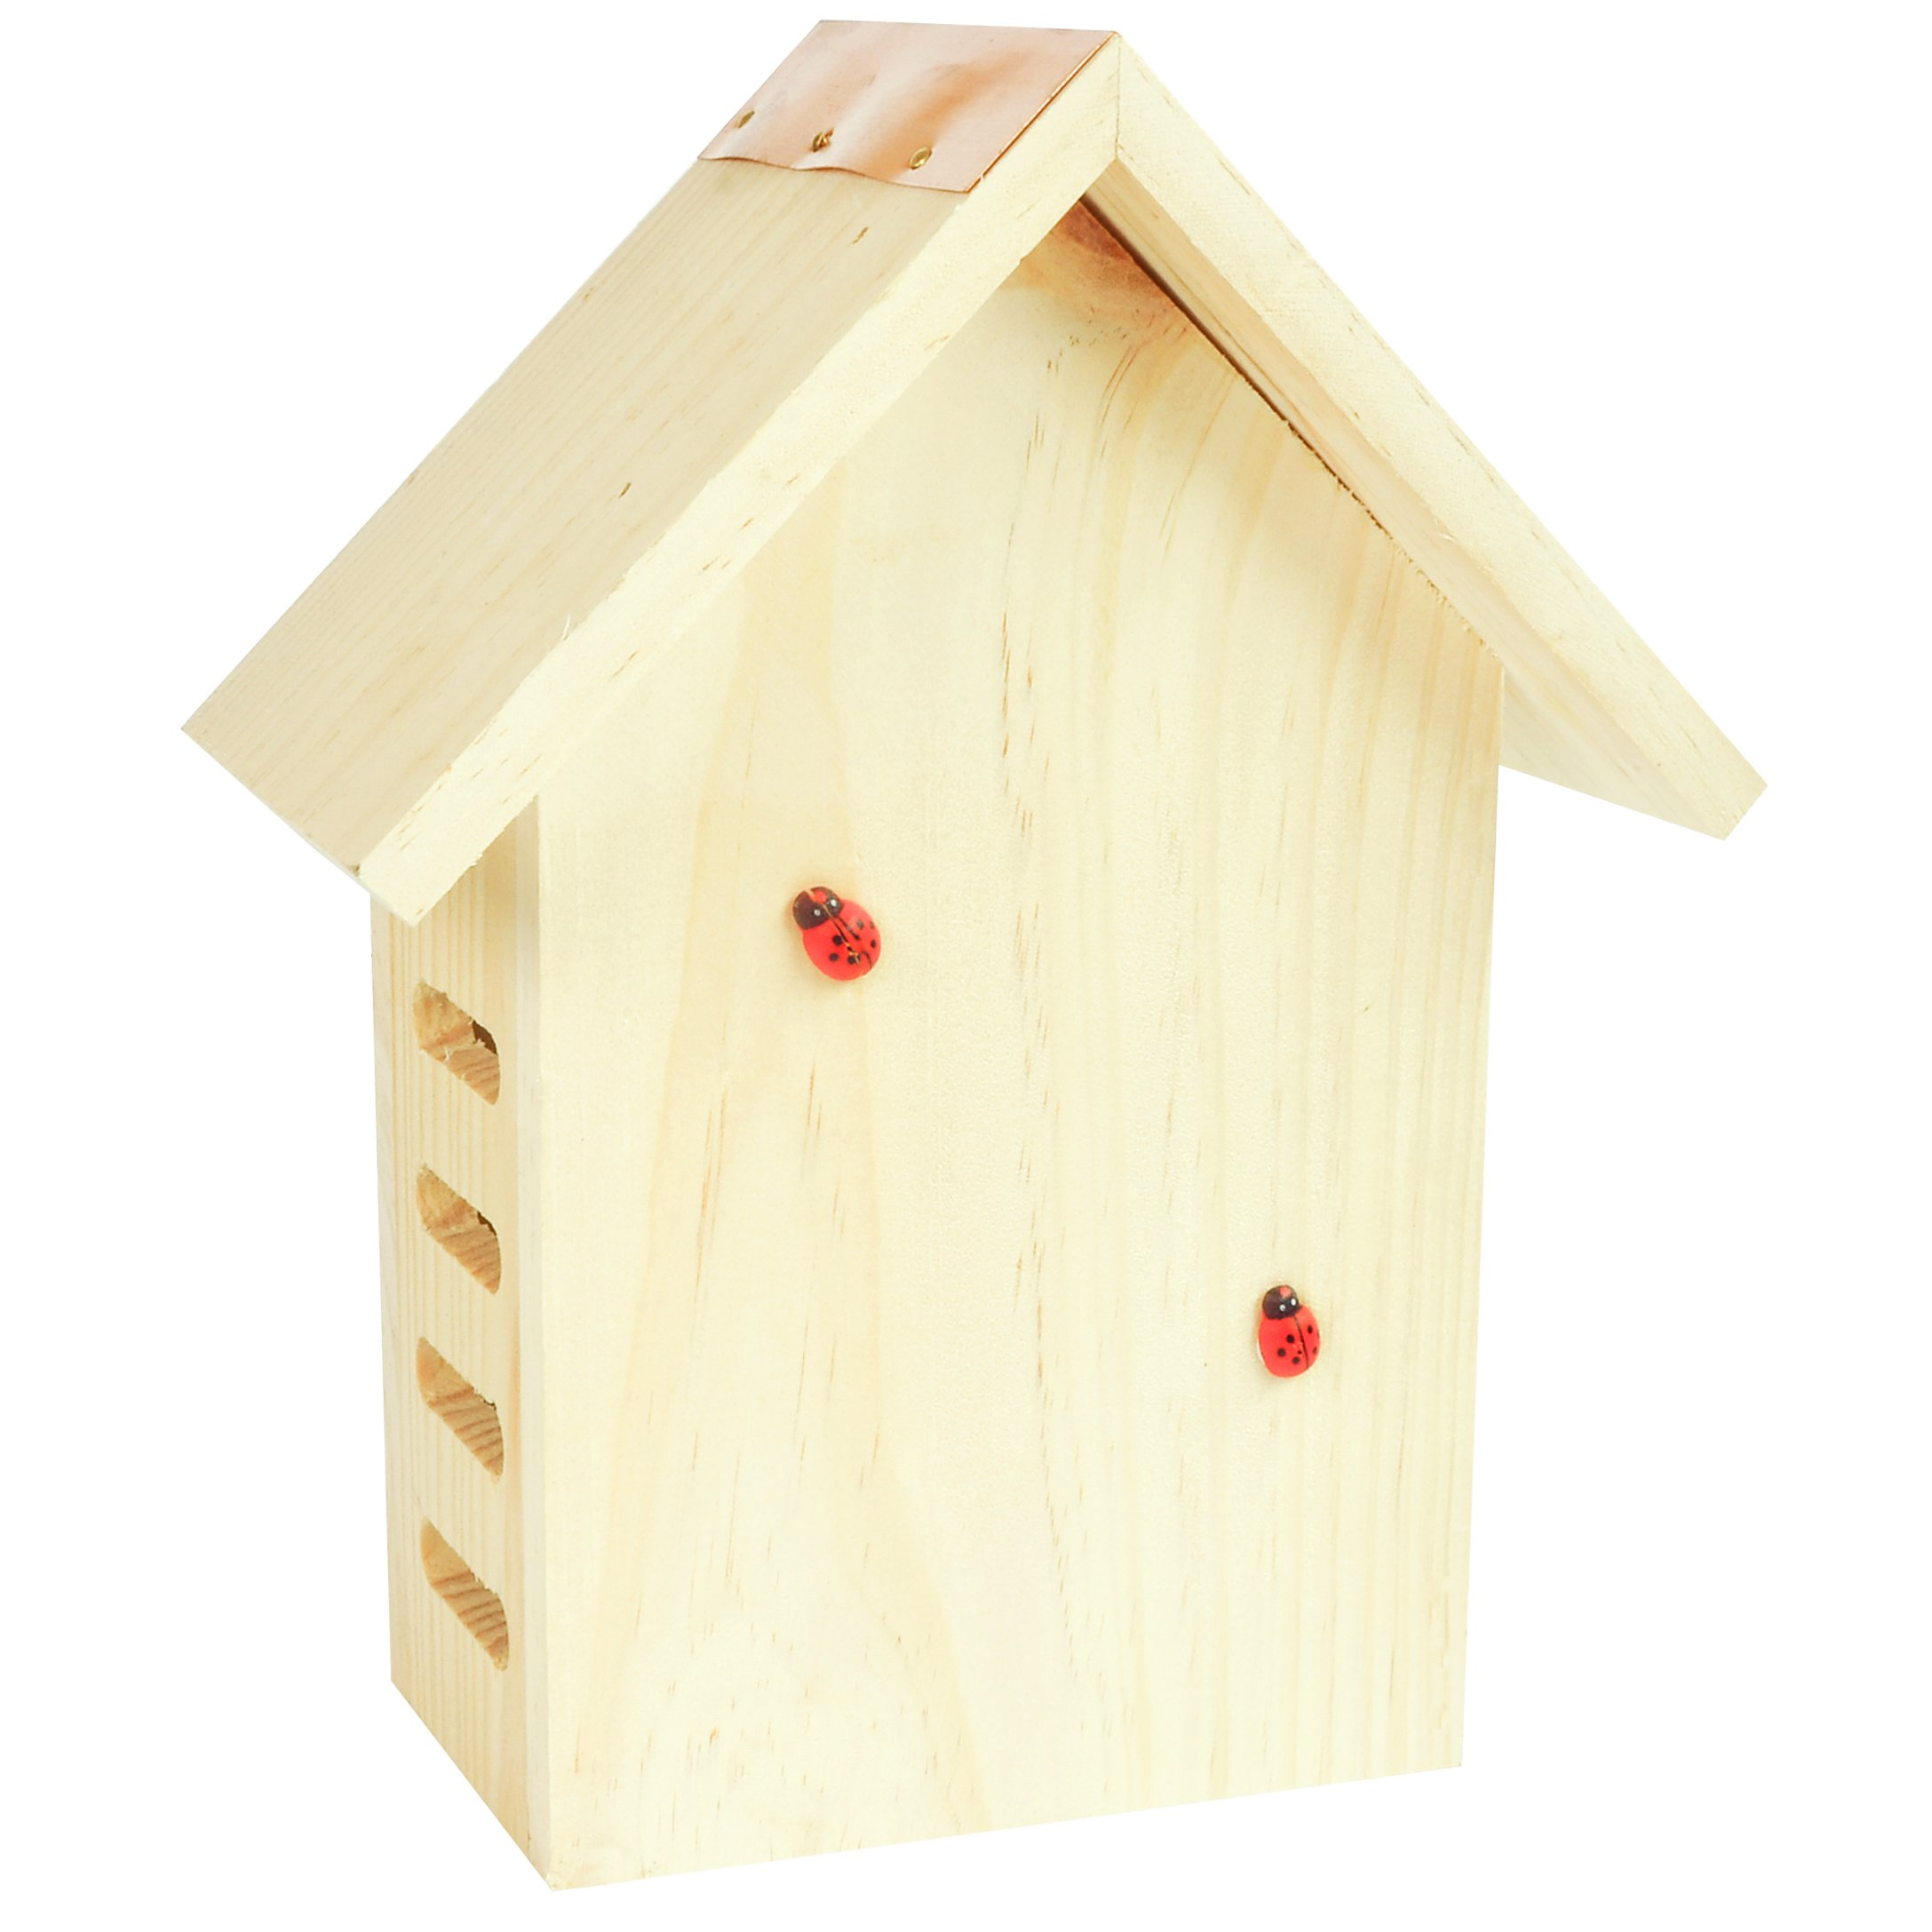 Gardirect Wildlife Wooden Ladybird House, Lacewing Home, Natural Insect Hotel